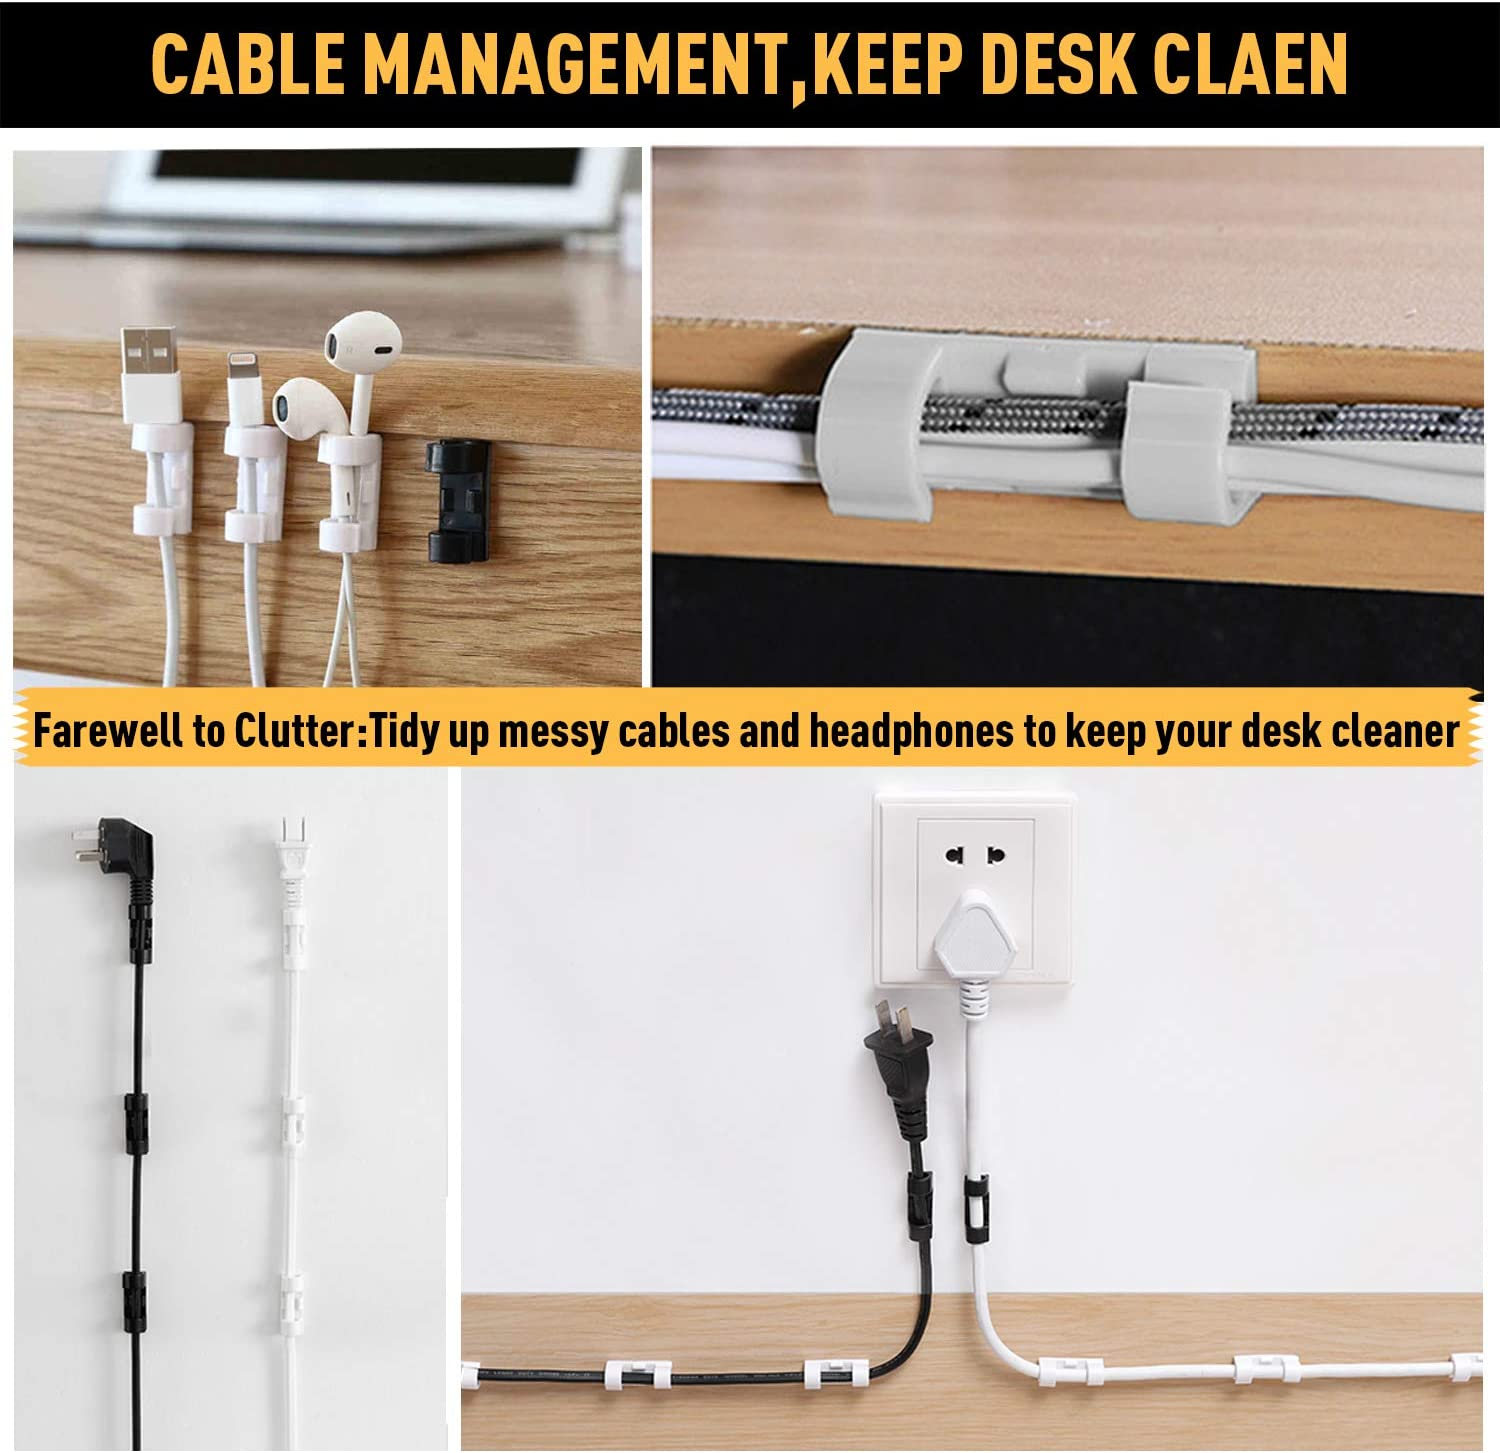 Black 20 Pcs XIAOXI Cable Management TV PC Wire Holder Sticky Tidy and Organise Cords and Wires Cable Clips with Strong Self-Adhesive